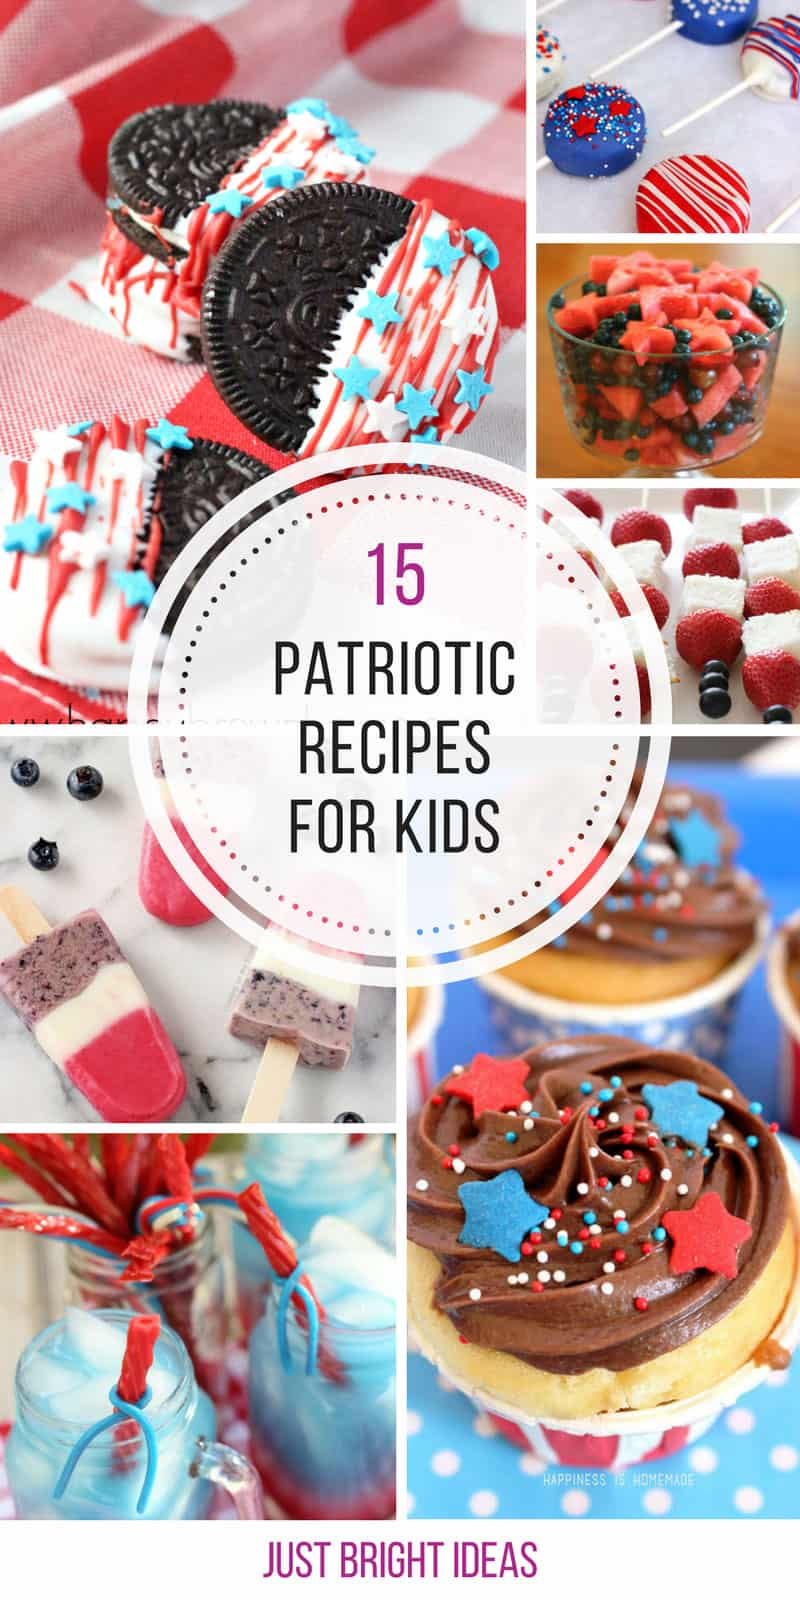 Loving these fun 4th of July recipes for kids! Thanks for sharing!